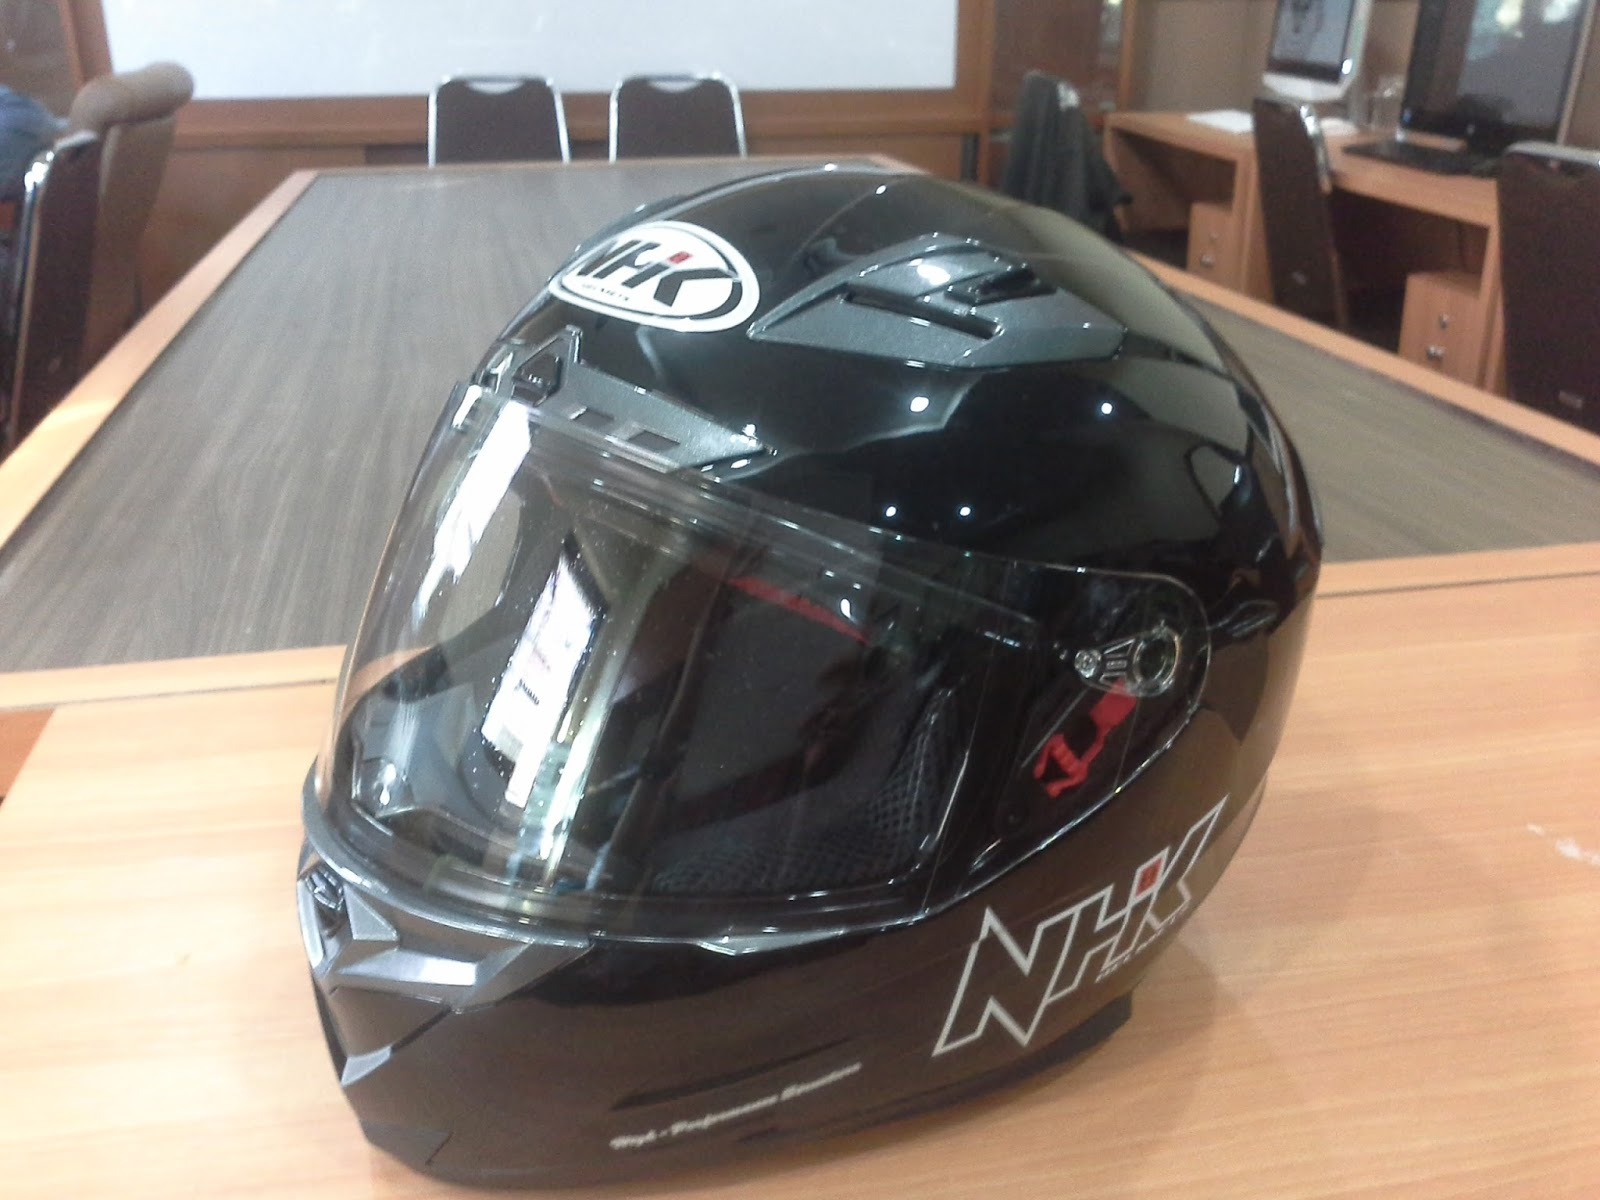 English NHK RX9 Helmet Review